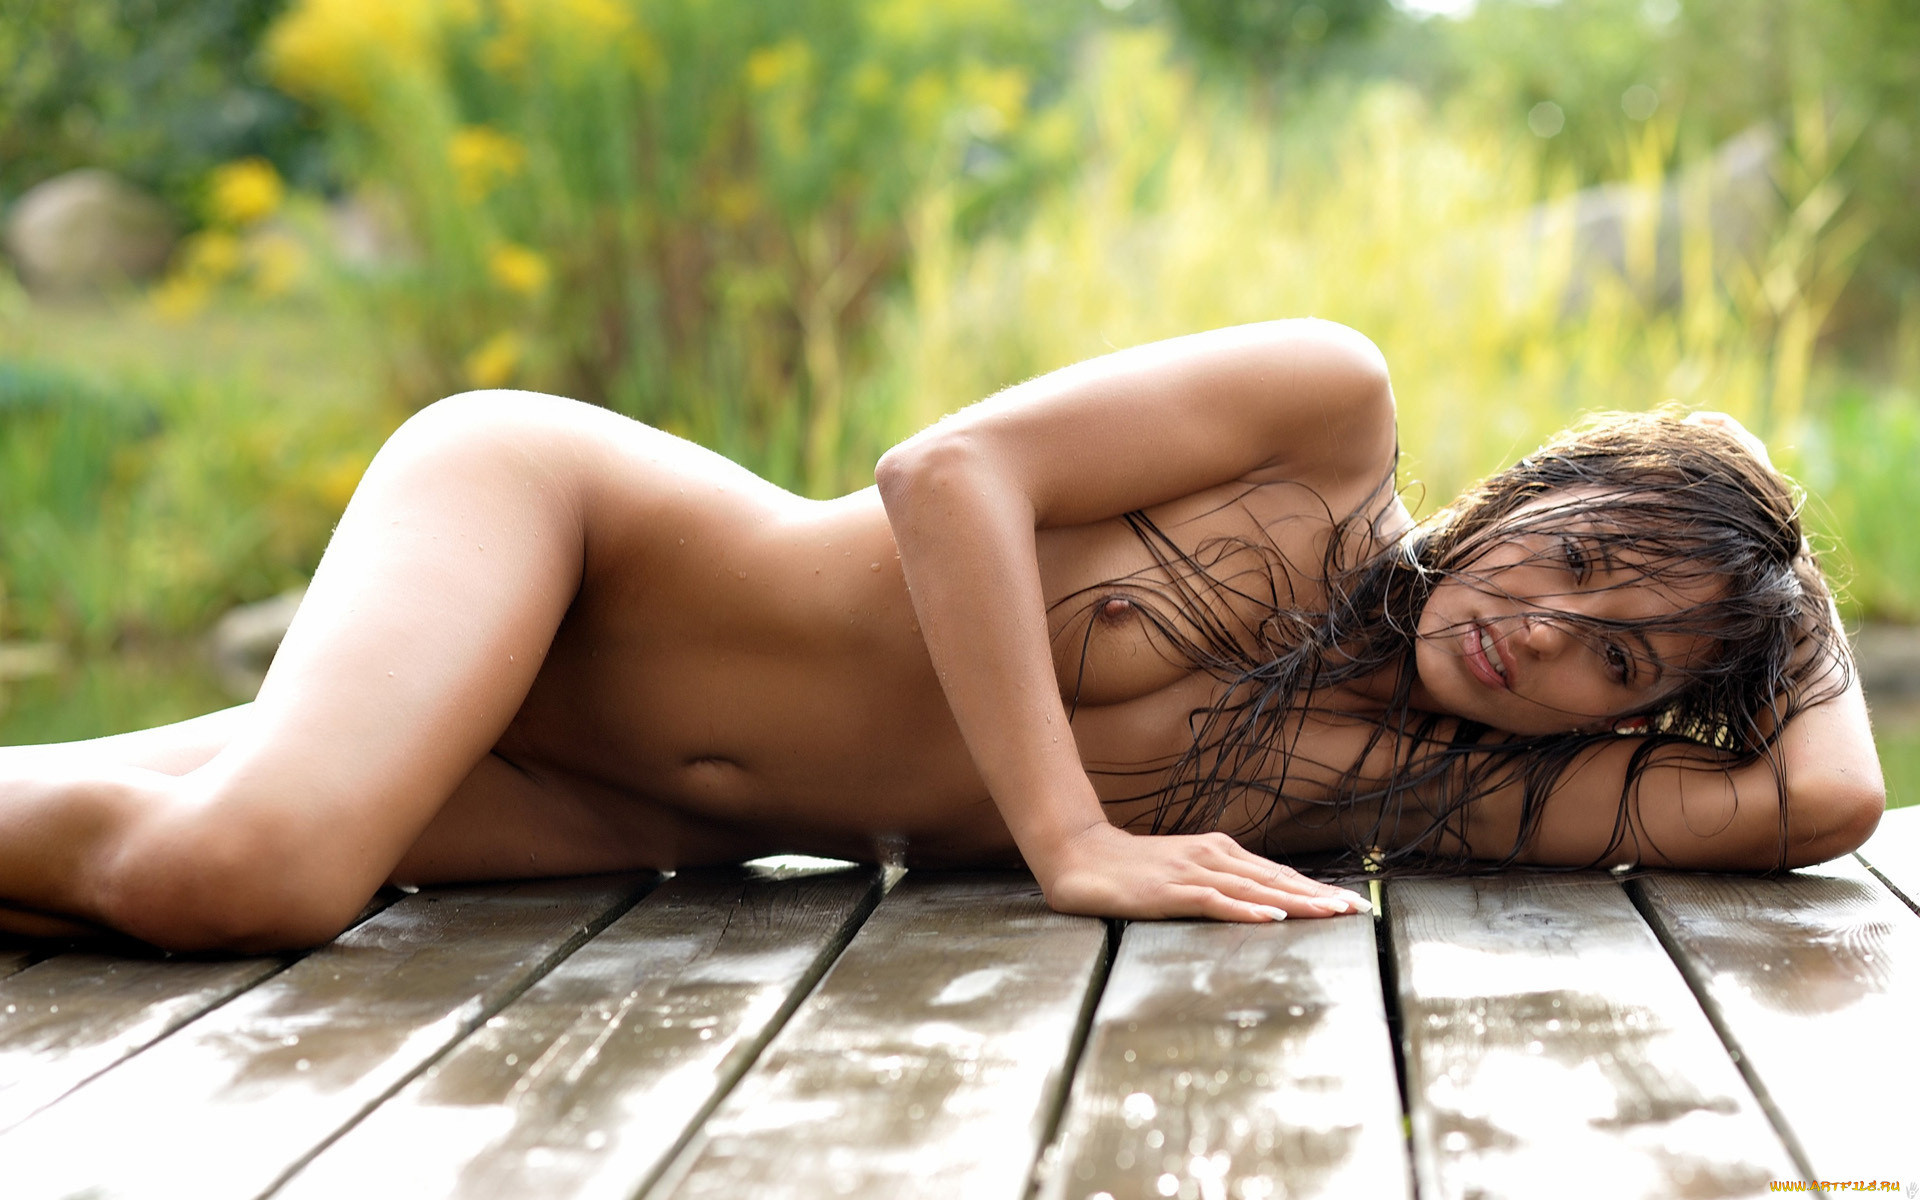 Free erotic photo gallery women vedio and picture